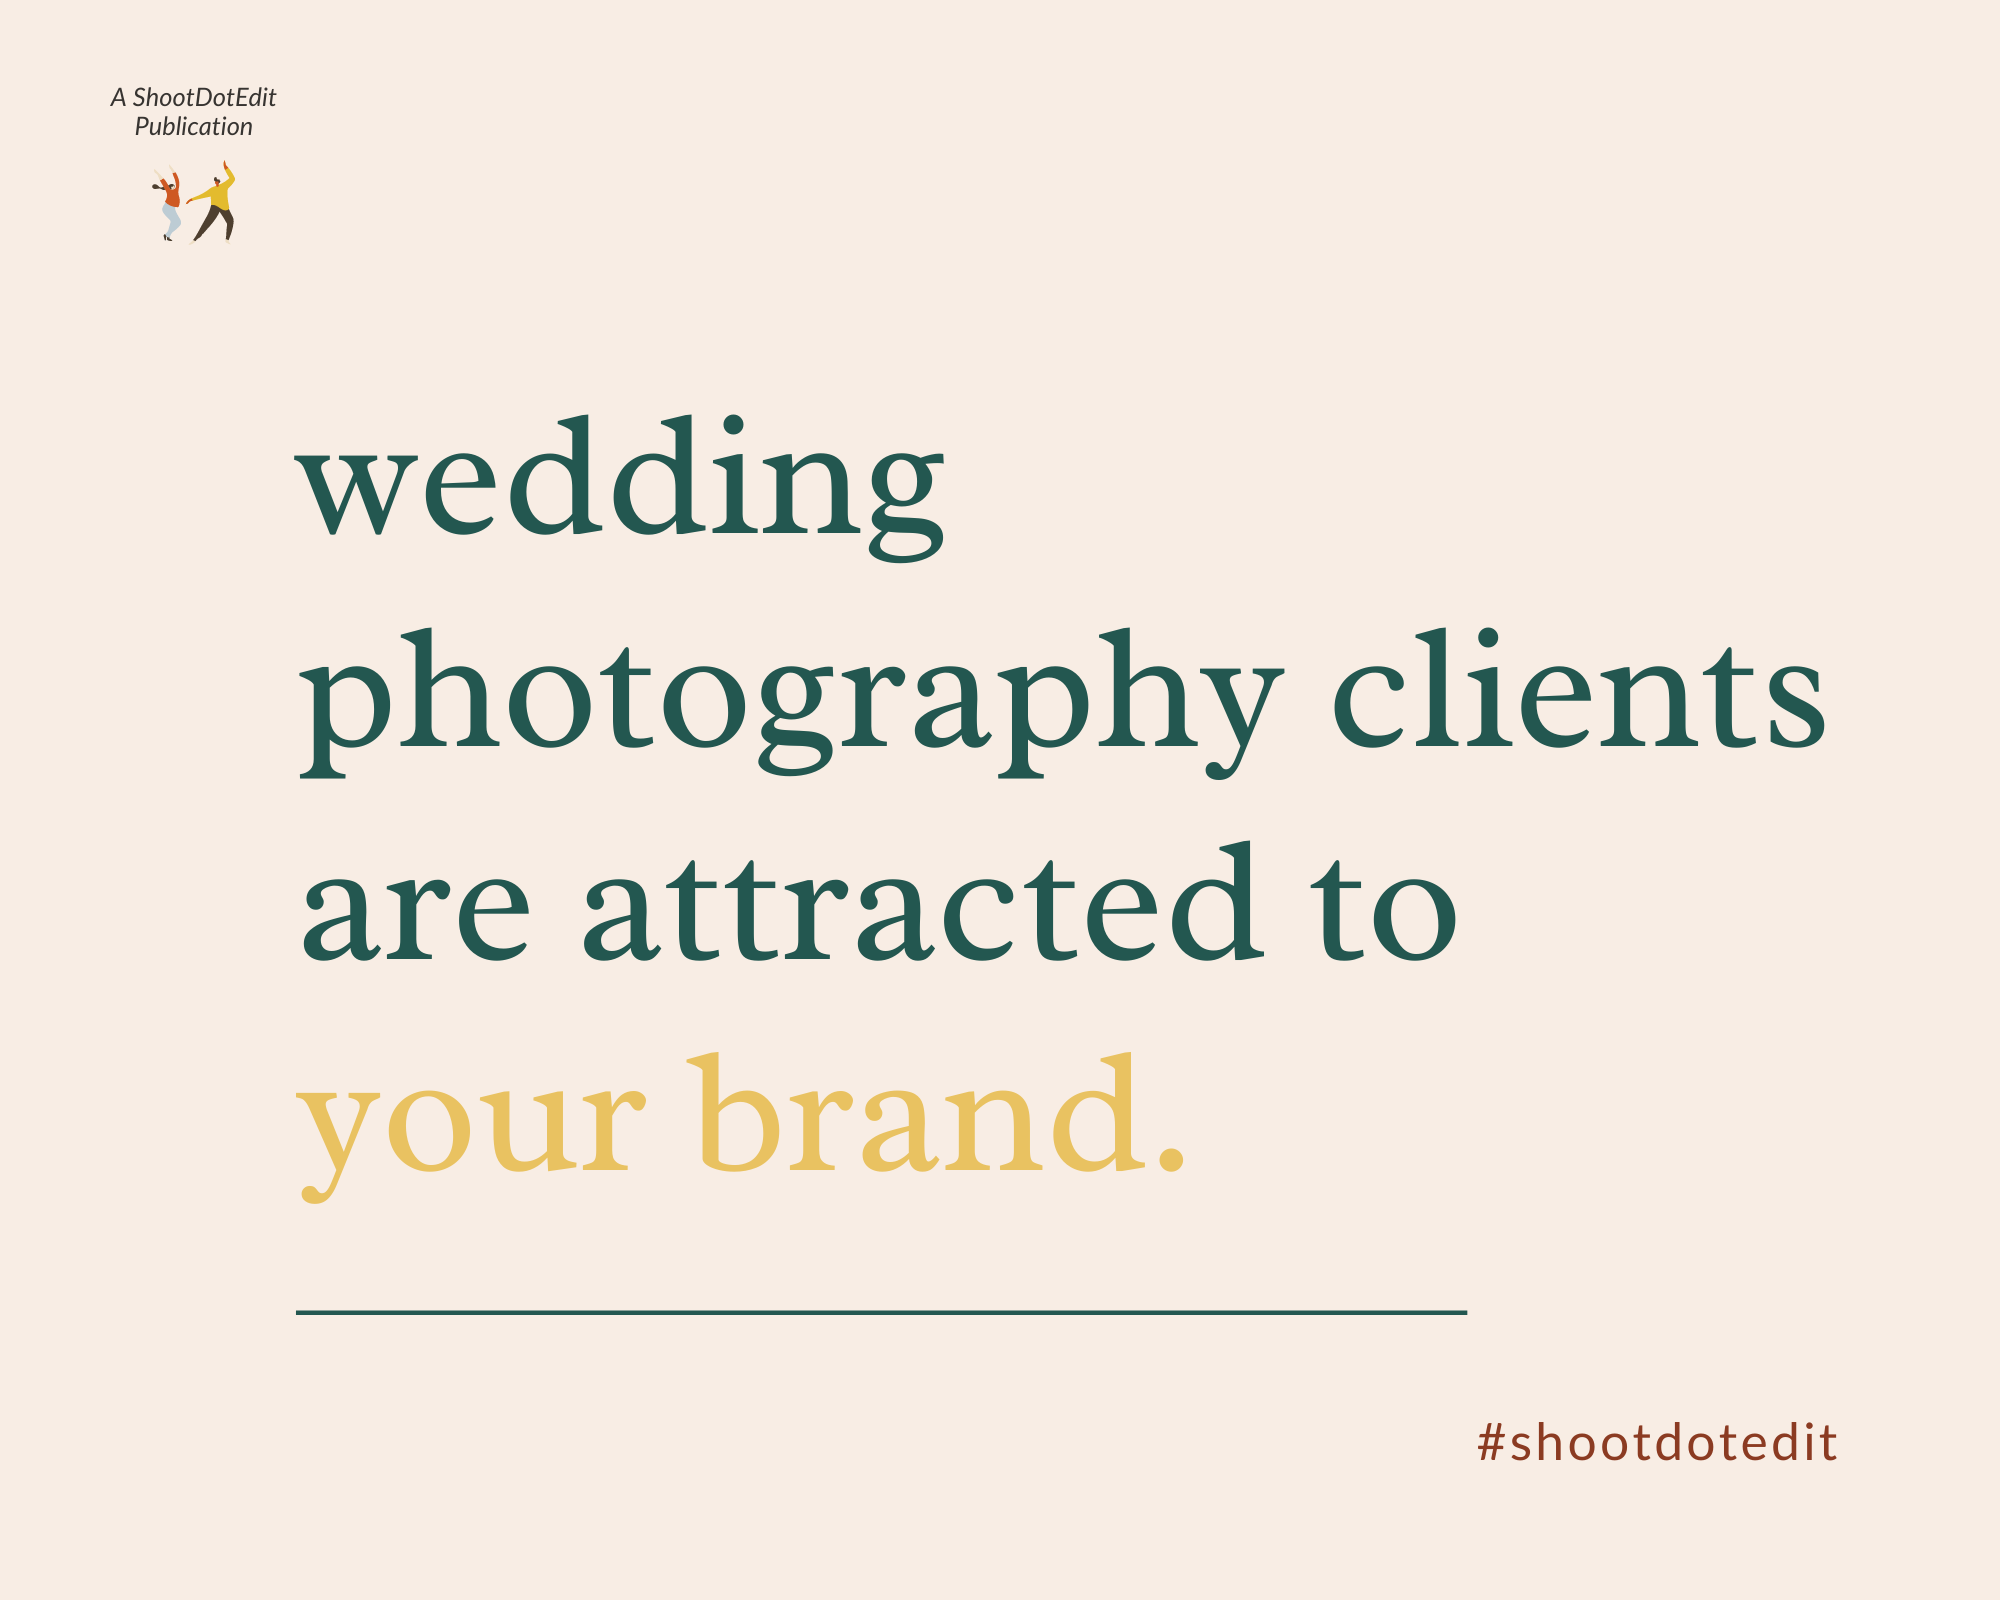 Infographic stating Wedding photography clients are attracted to your brand